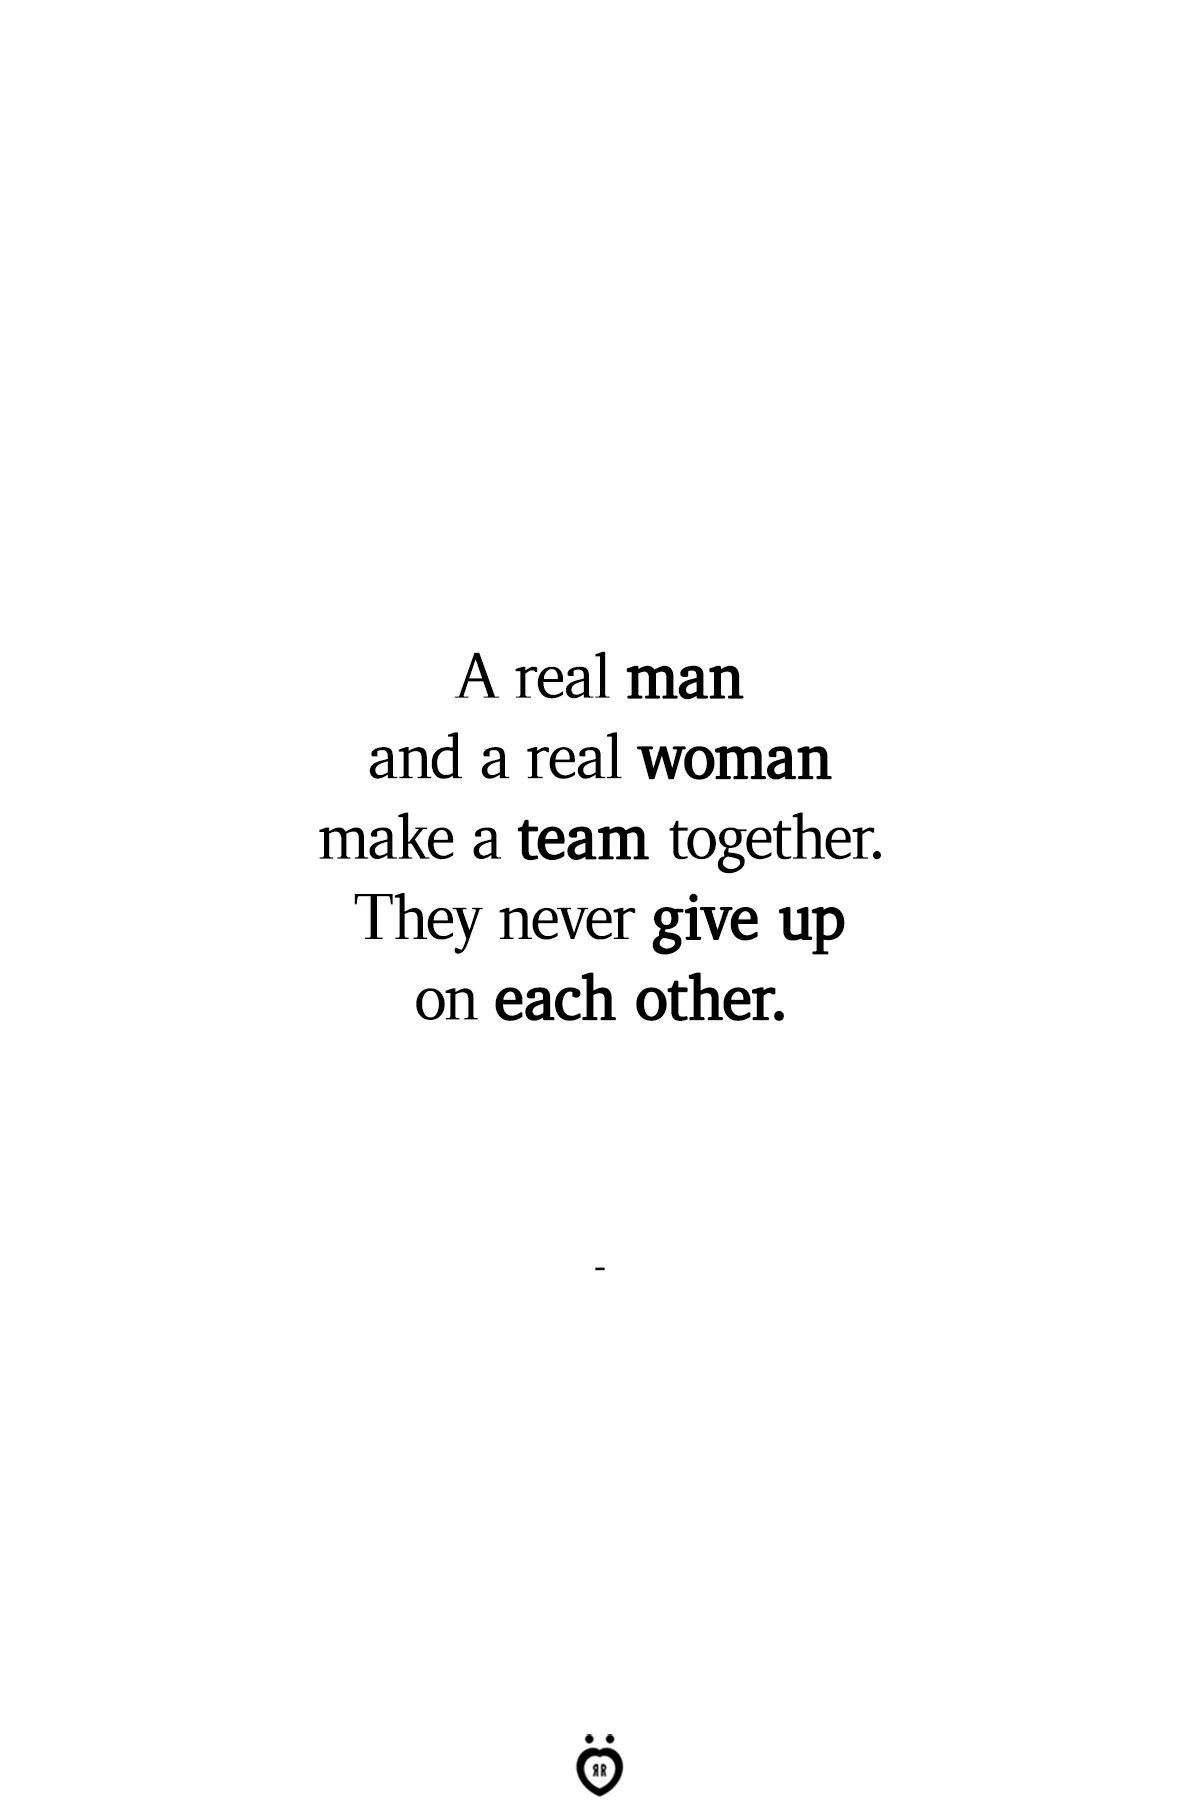 Pin By Anaci On Relationship Rules Quotes Talking Quotes Relationship Quotes Real Talk Quotes